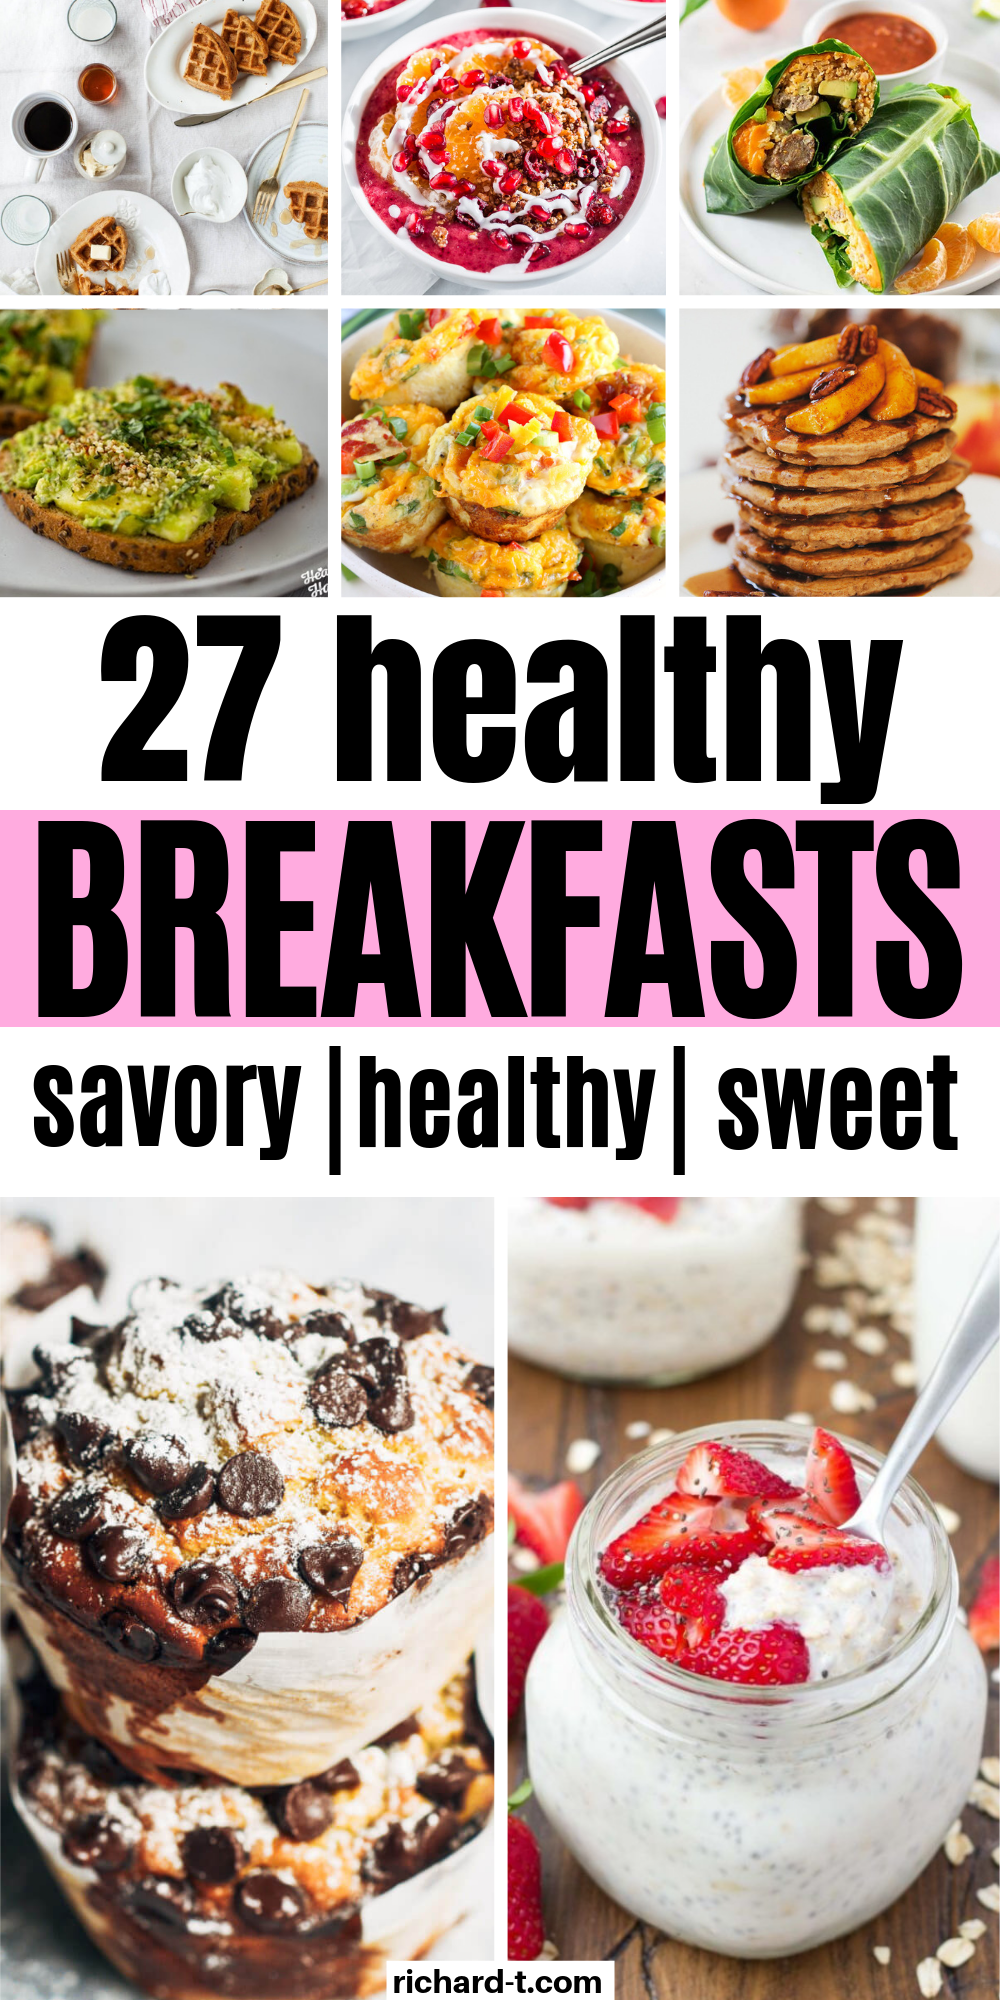 These 27 healthy breakfast recipes are to die for!! I am so glad I found them. Start your day the right way with these healthy breakfast recipes!!